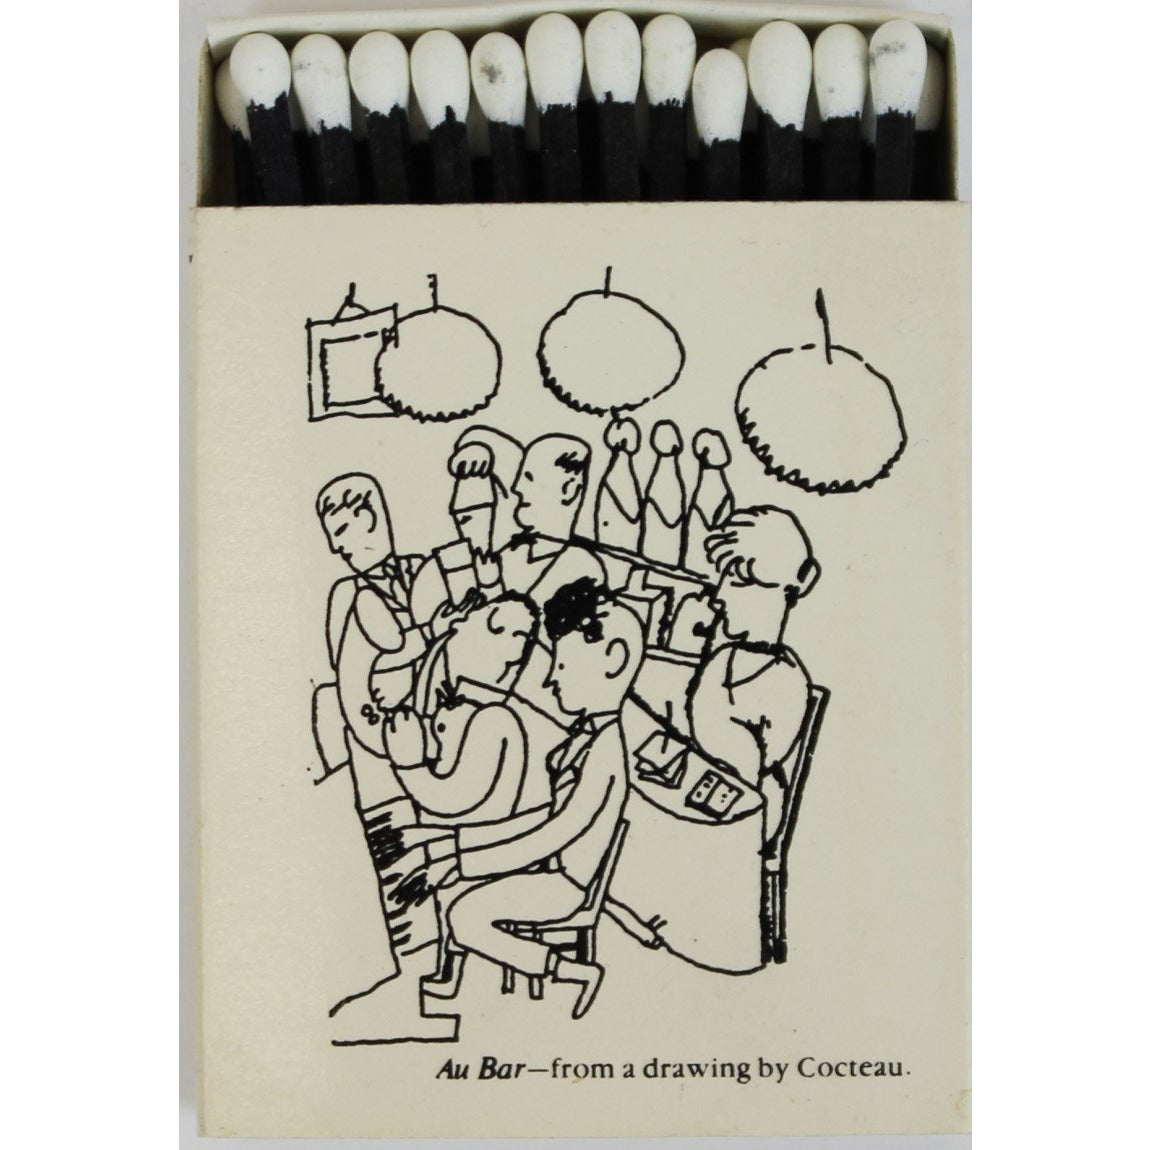 Au Bar Matchbook